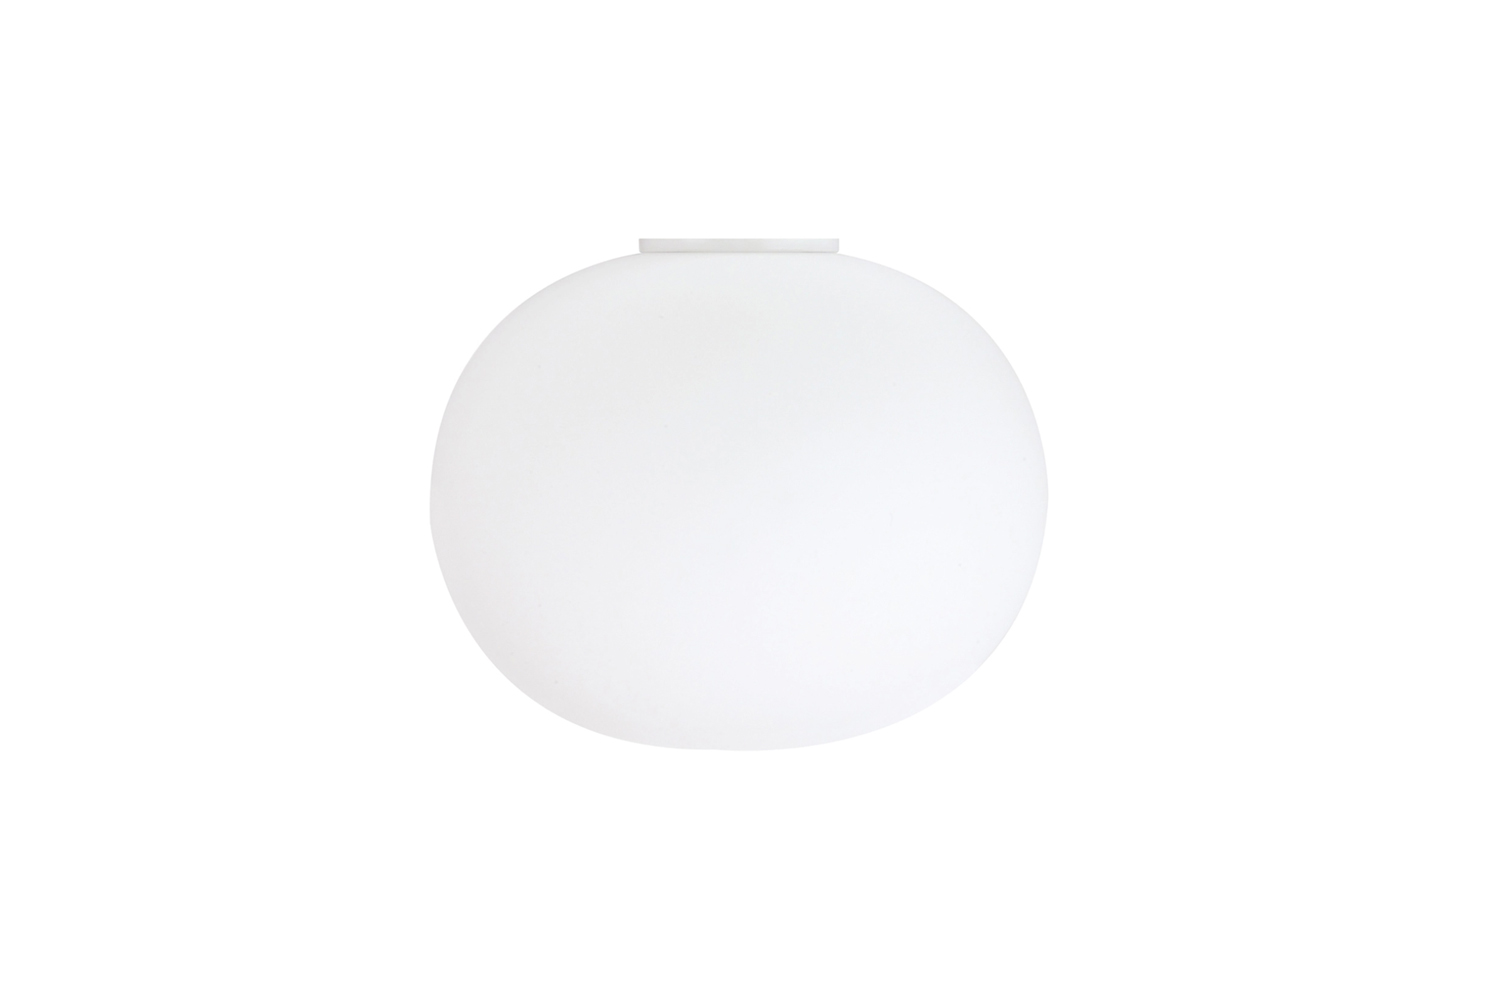 the light fixture is the jasper morrison glo ball ceiling lamp; \$595 at flos. 14